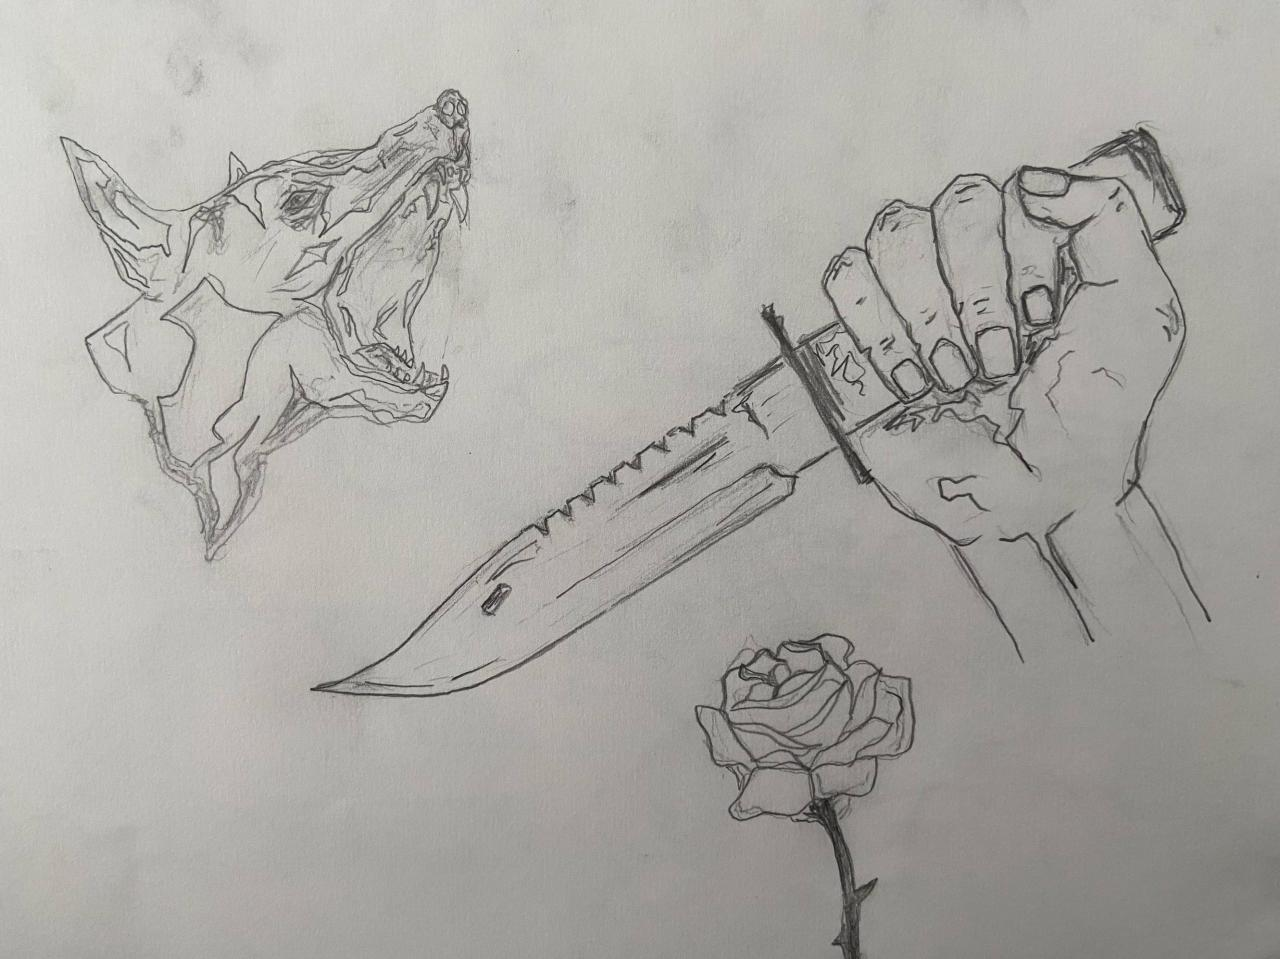 Some design ideas I drew. Tattoo artist could fix them up I'm sure